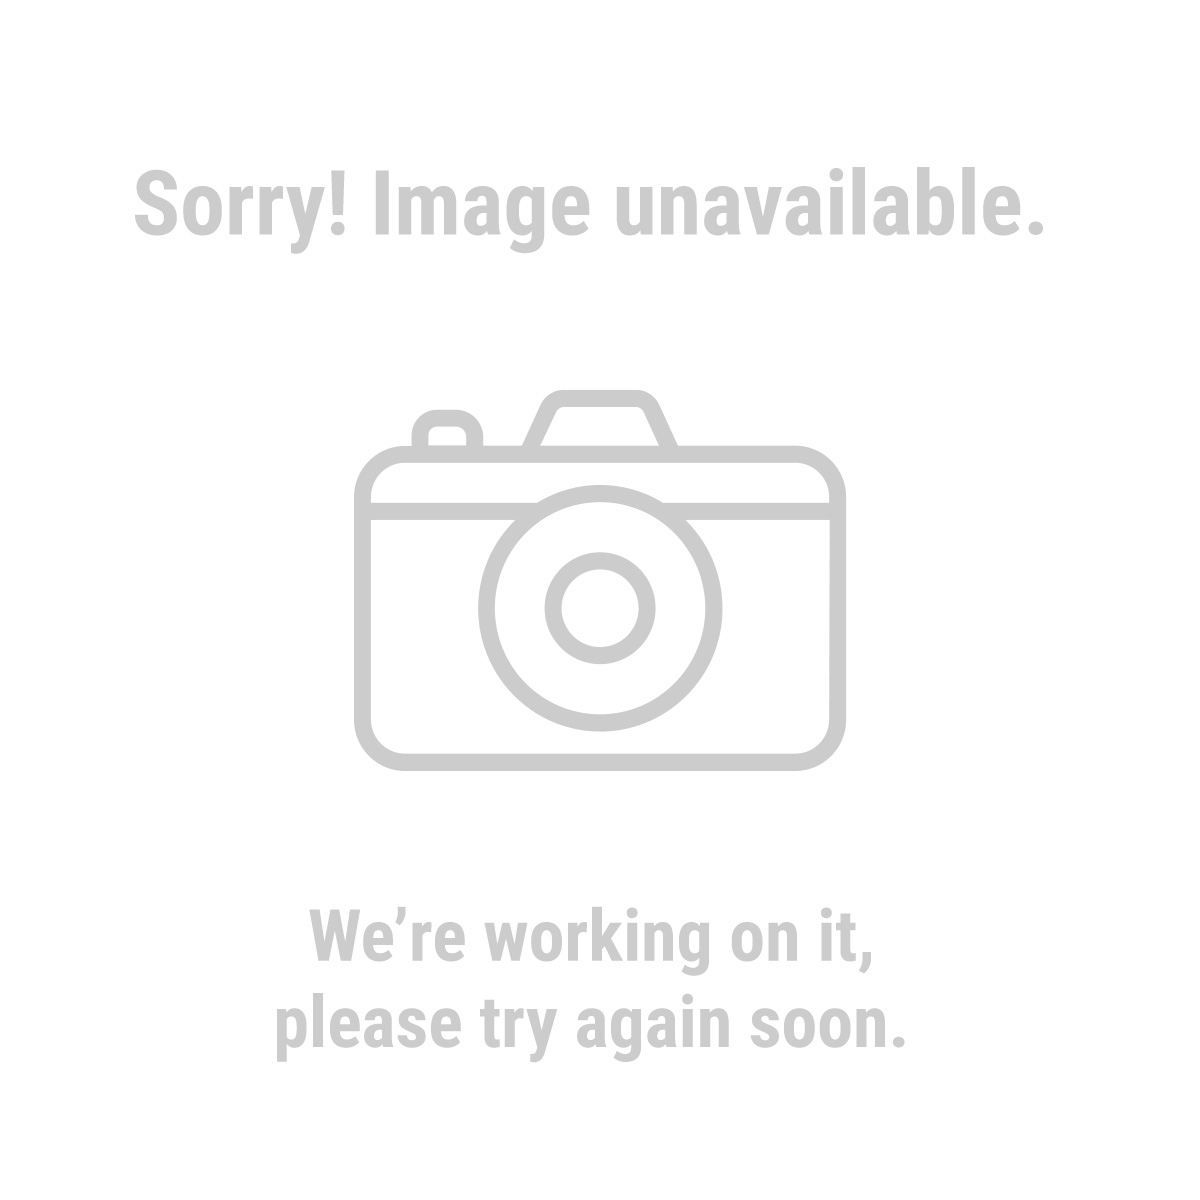 Cen-Tech 61593 11 Function Digital Multimeter with Audible Continuity